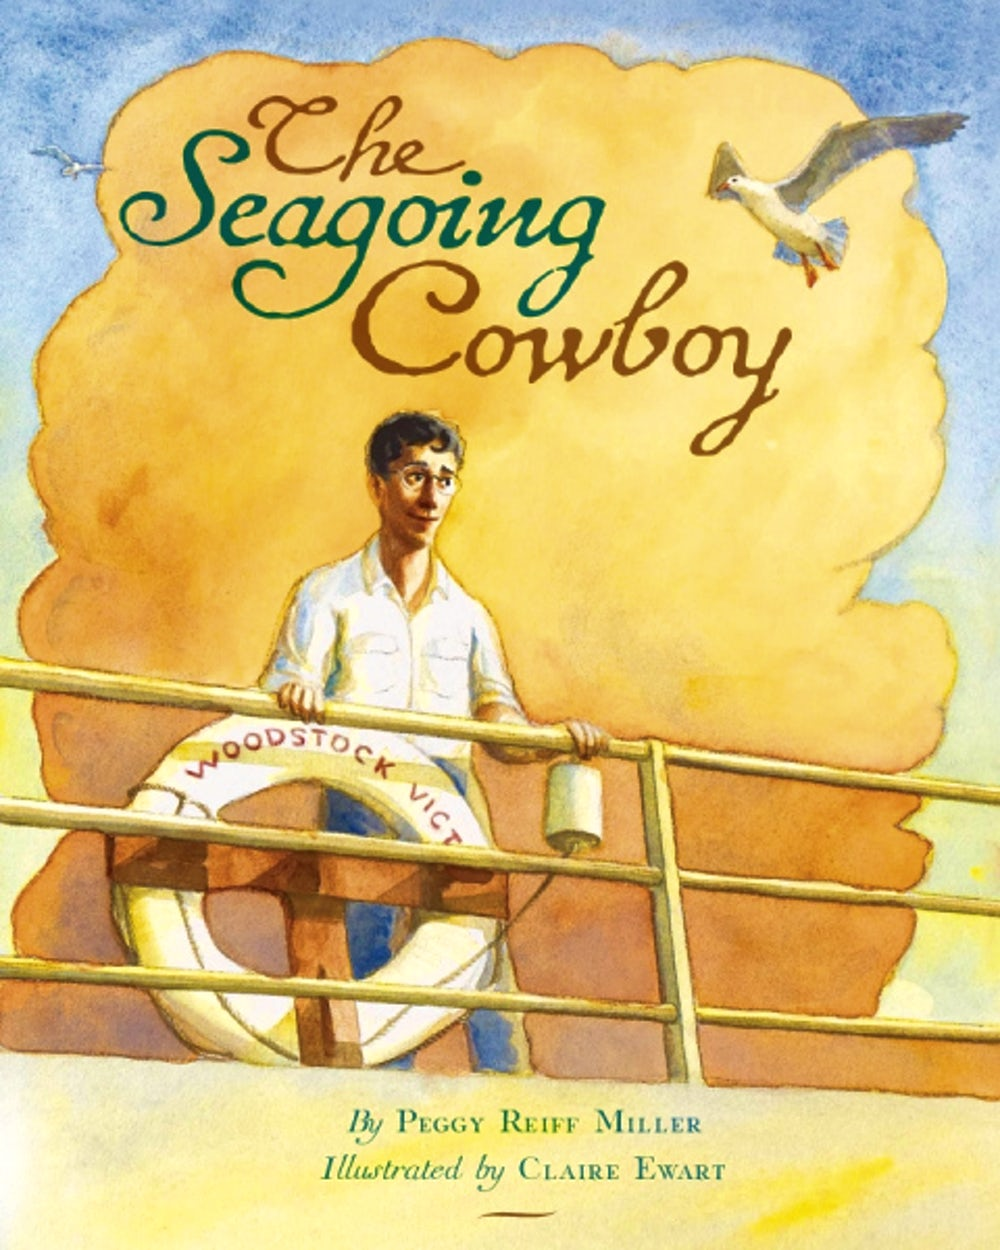 Peggy Reiff Miller's book, The Seagoing Cowboy